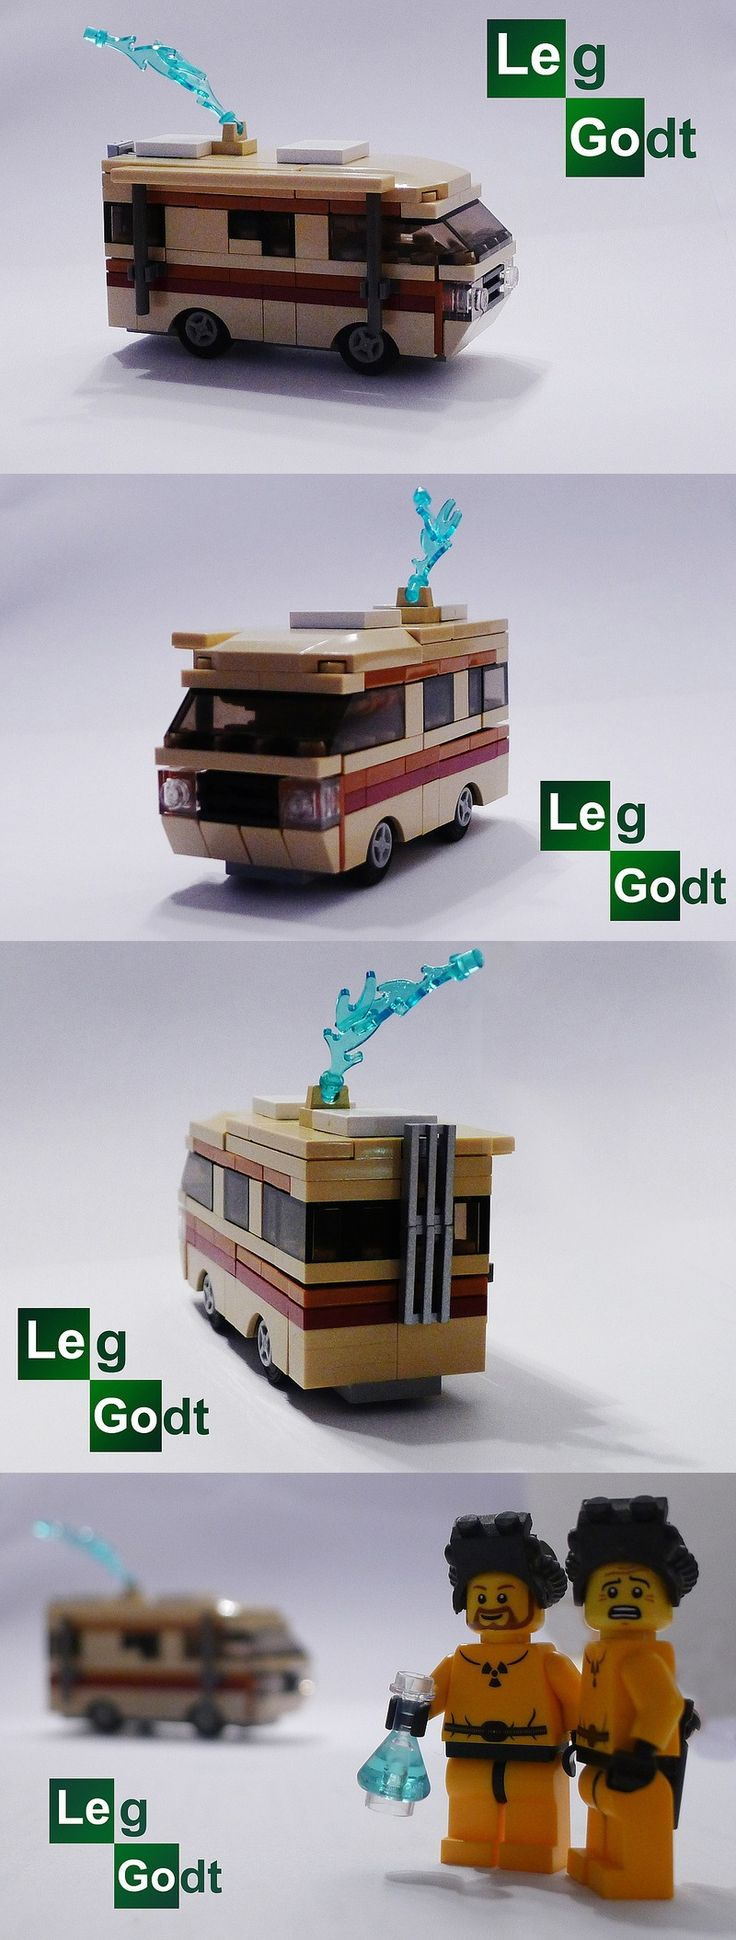 Vtg 1990 Winnebago Cooking Van Breaking Bad Edition #Eurobricks #PimpMyCamper